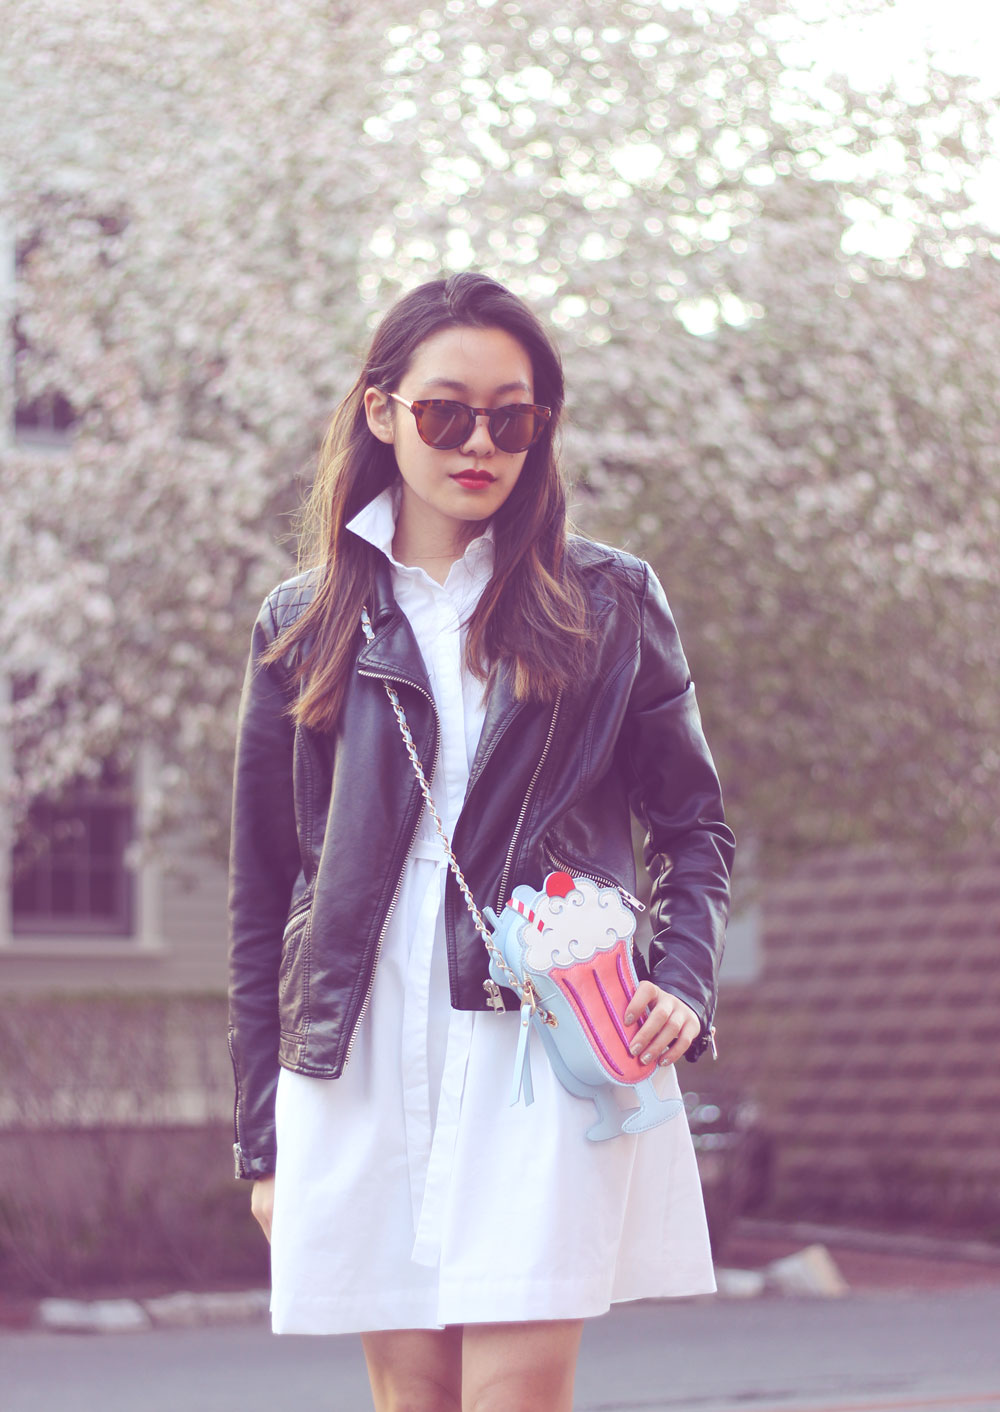 Black leather jacket with white shirt dress and novelty bag